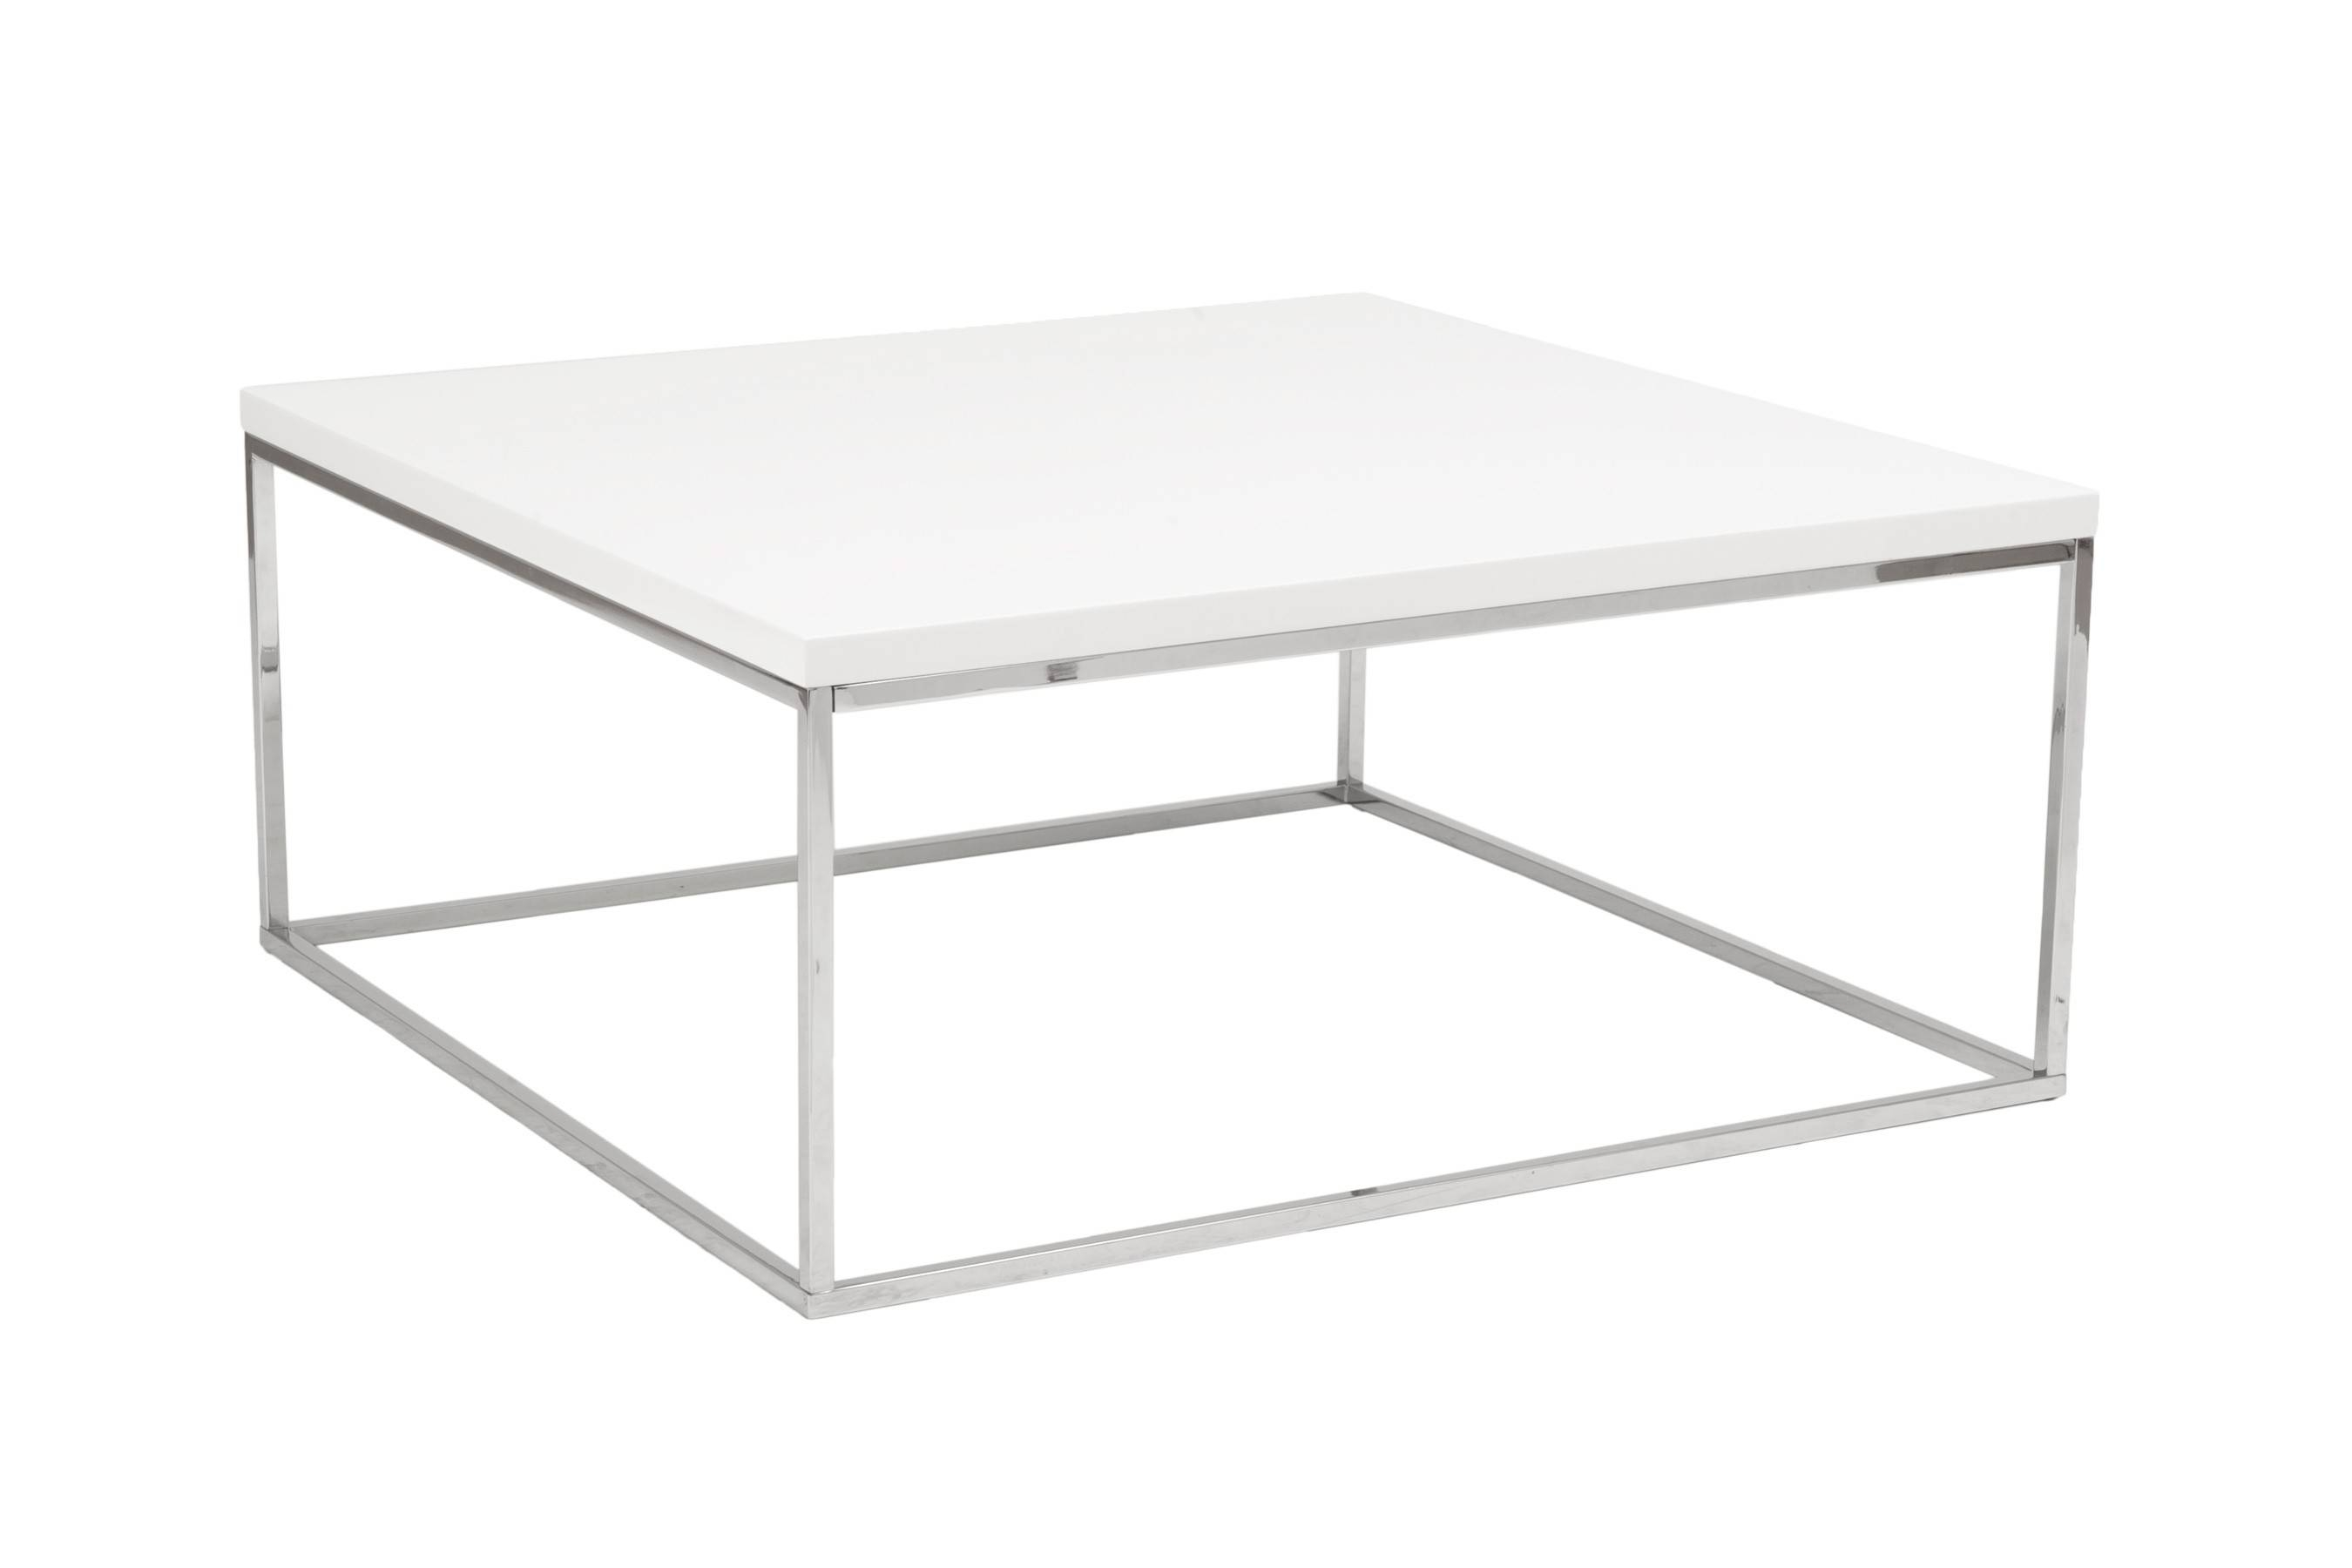 Italian Modern Square Coffee Table | Coffeetablesmartin within Square Coffee Table Modern (Image 9 of 15)